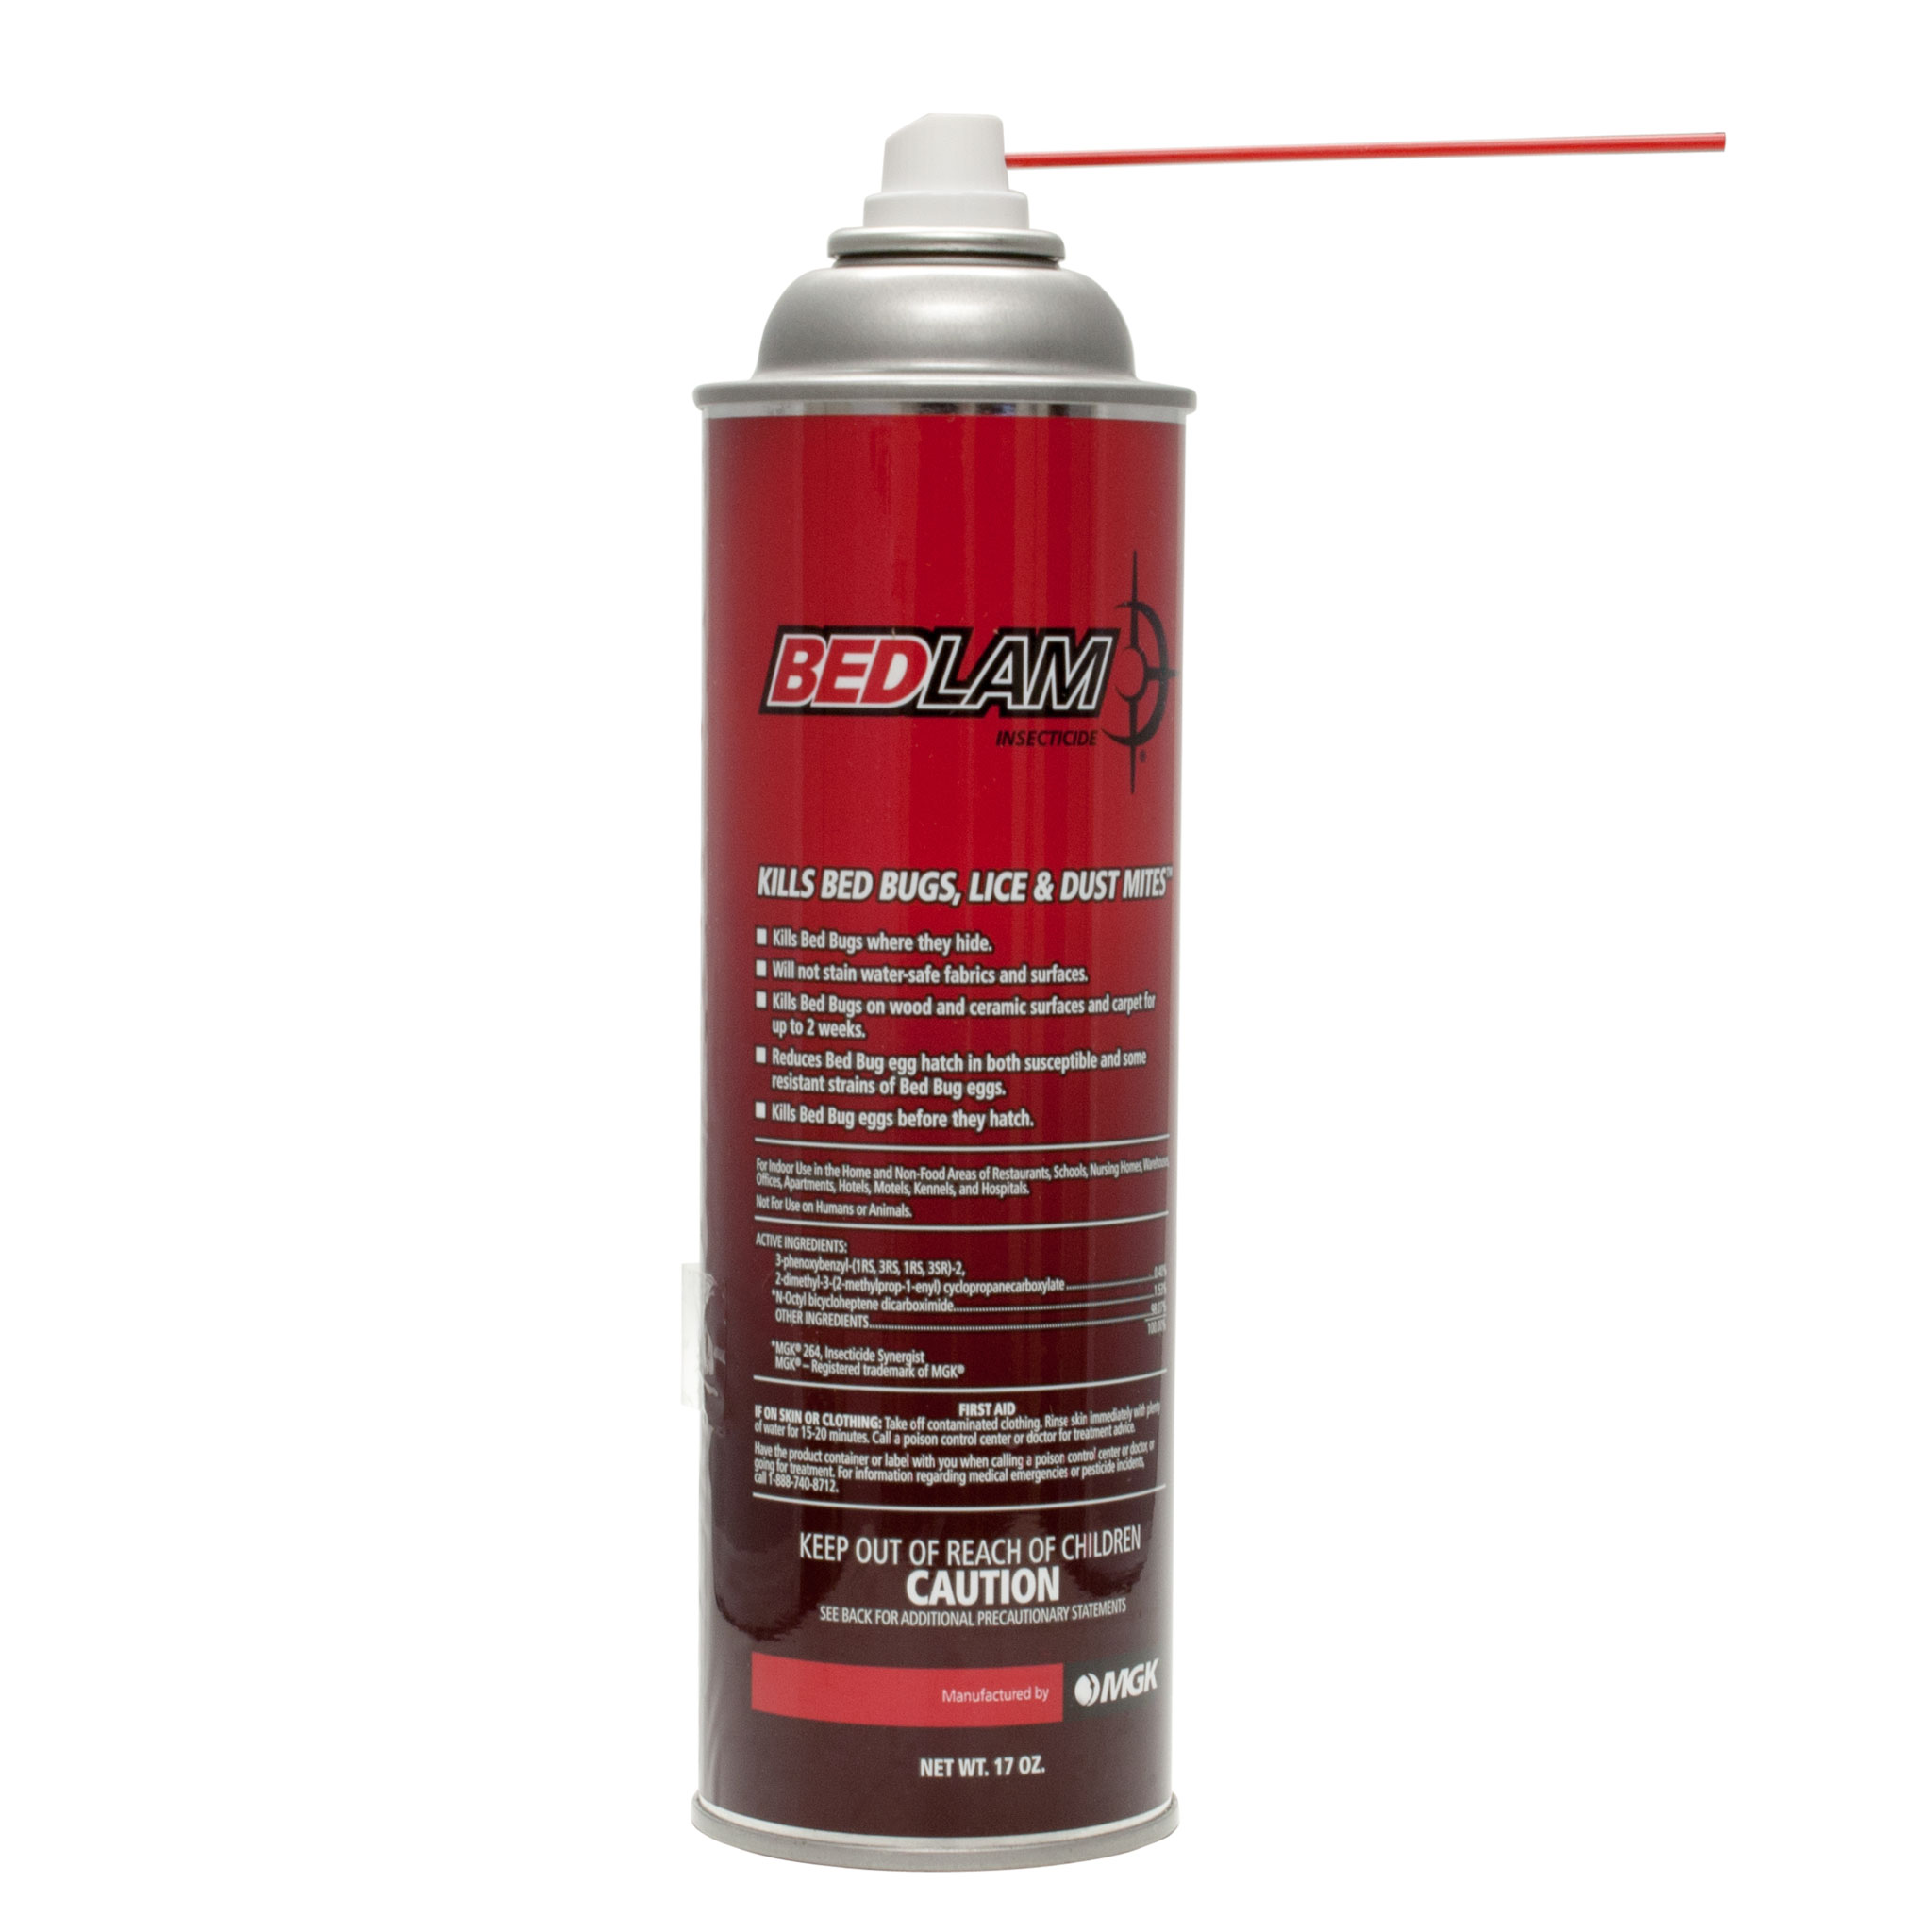 bed bug spray - bed bug killer pesticide & insecticide | do my own